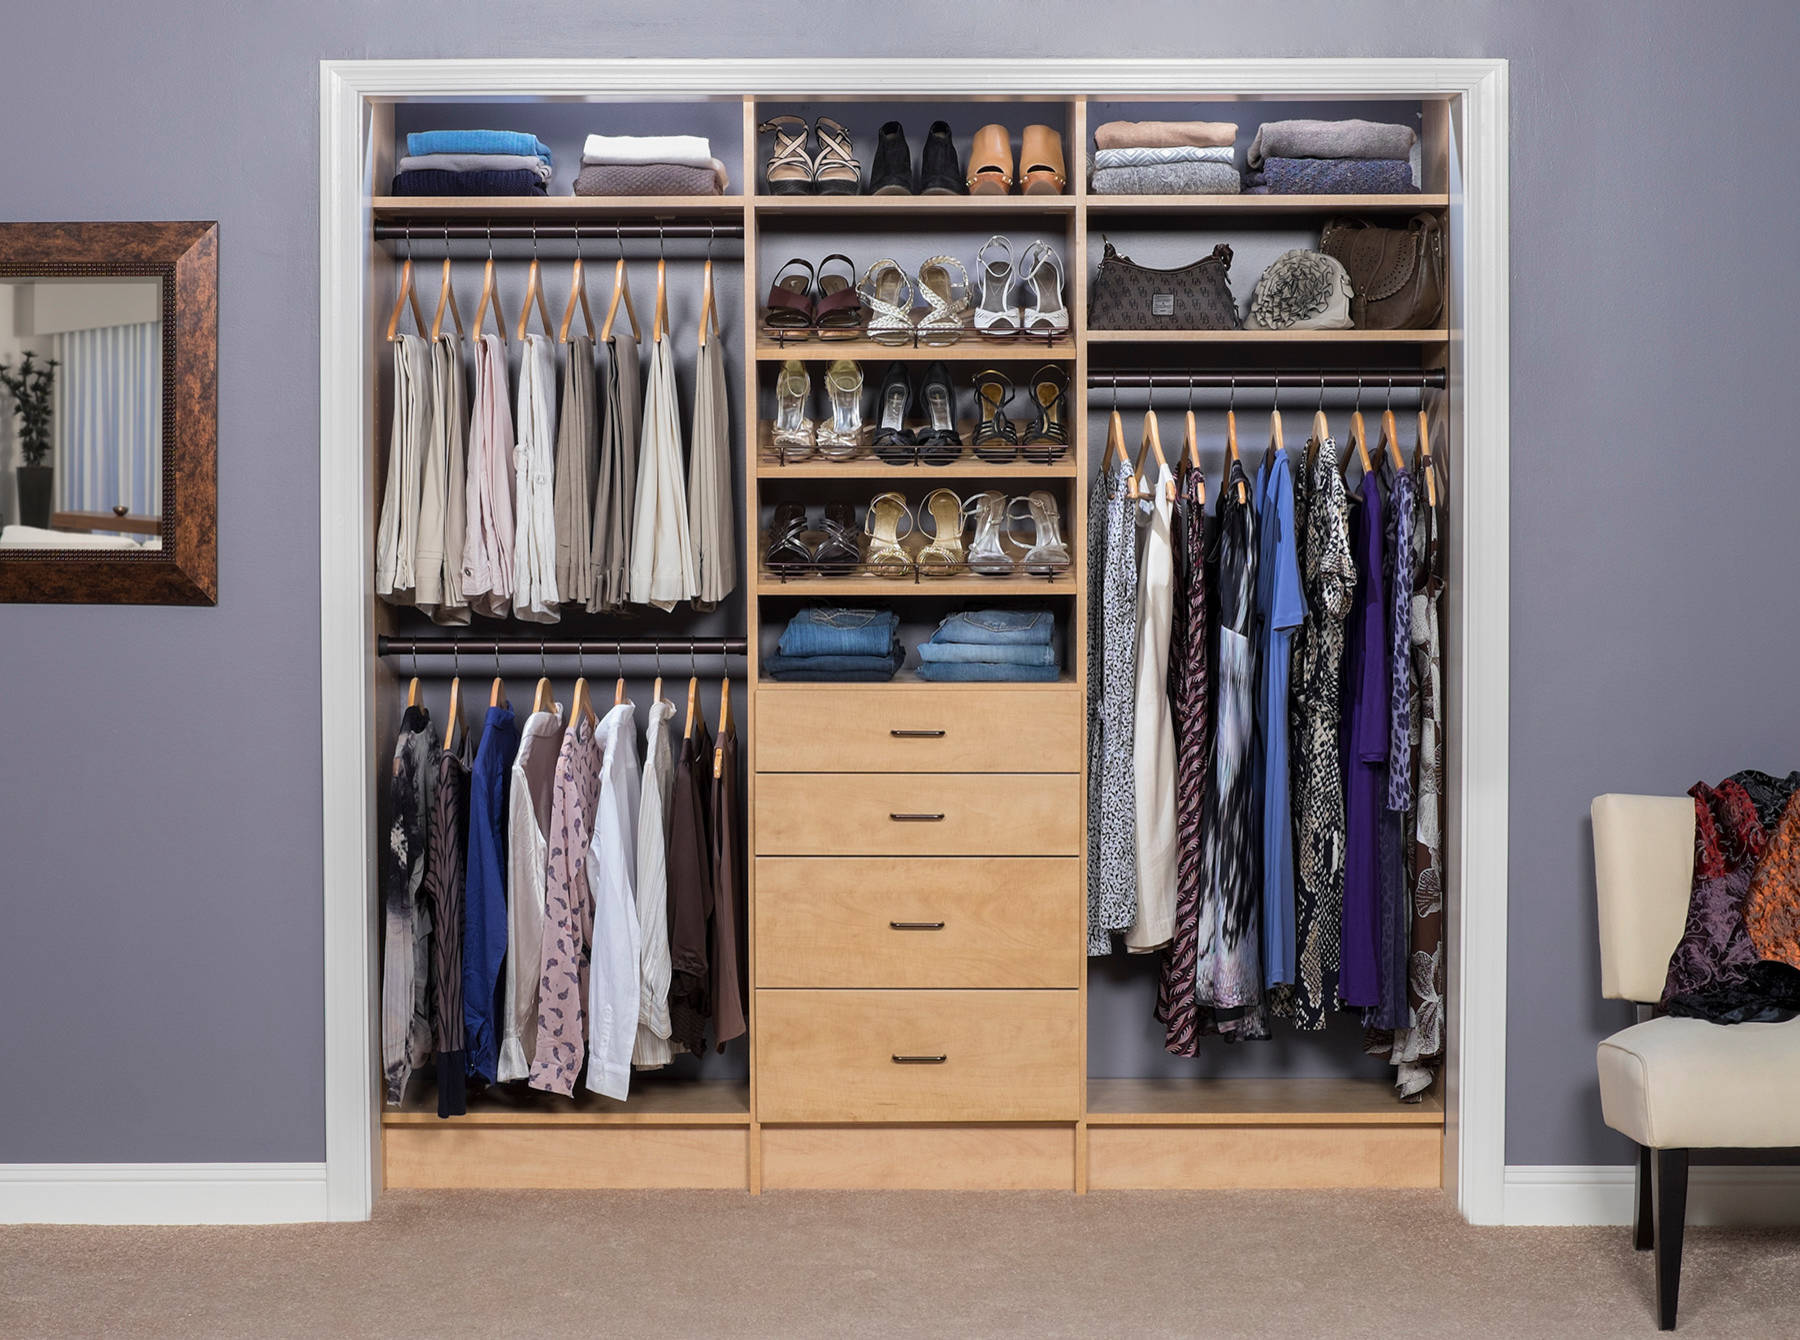 30 Beautiful Small Closet Pictures & Ideas - September, 30  Houzz